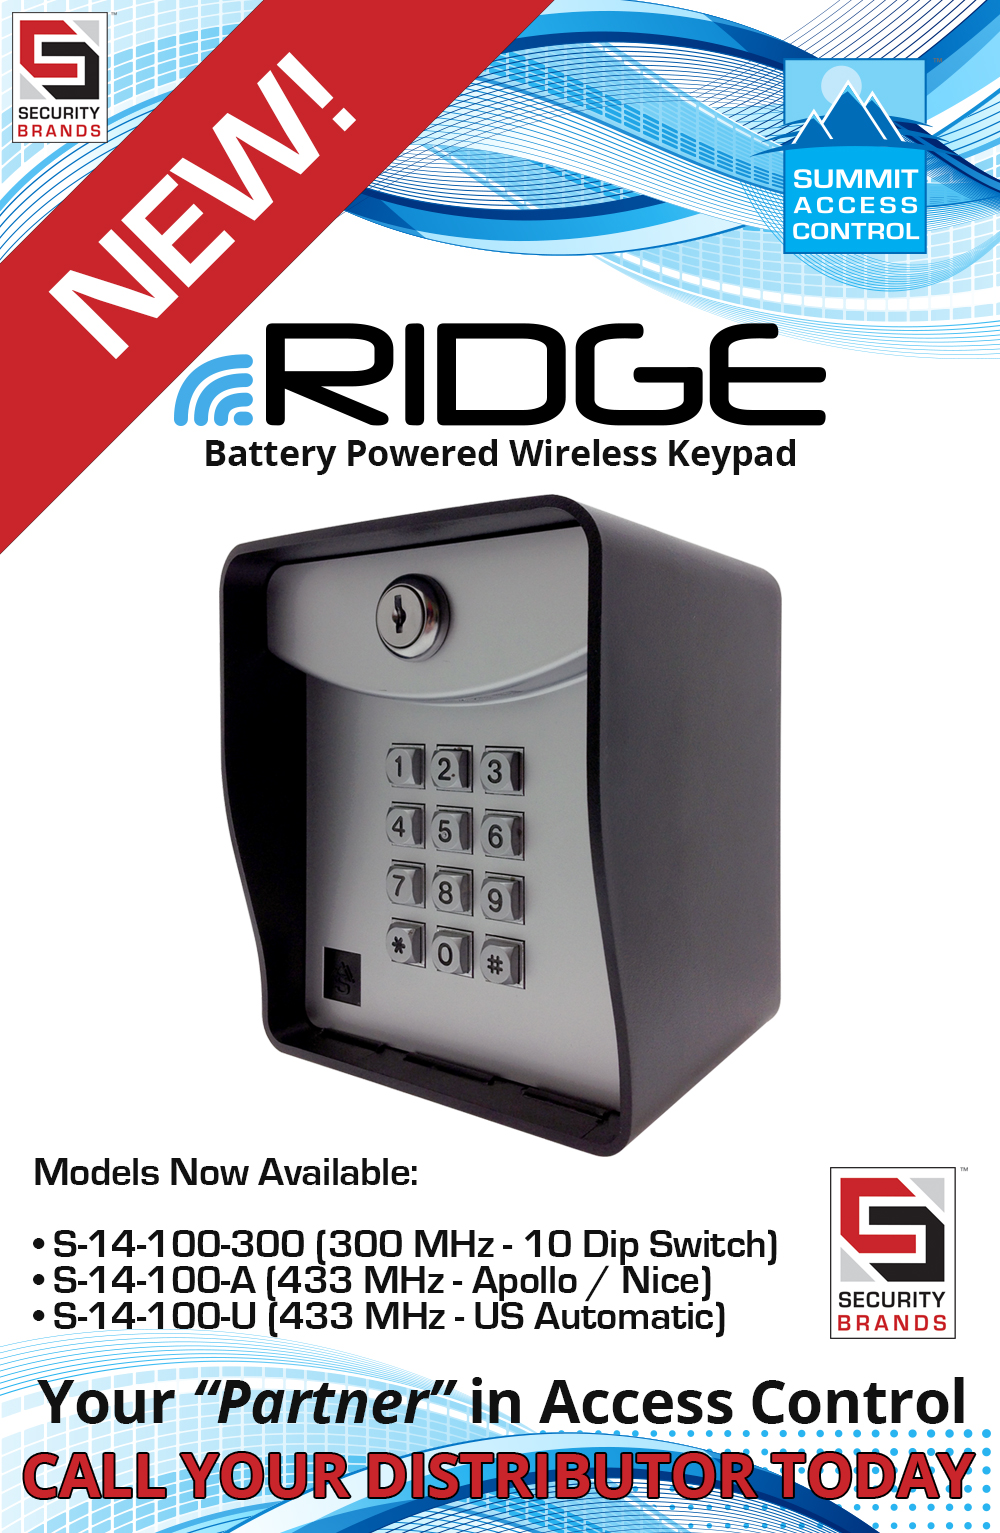 Security Brands, Inc. Introduces a new battery powered wireless keypad